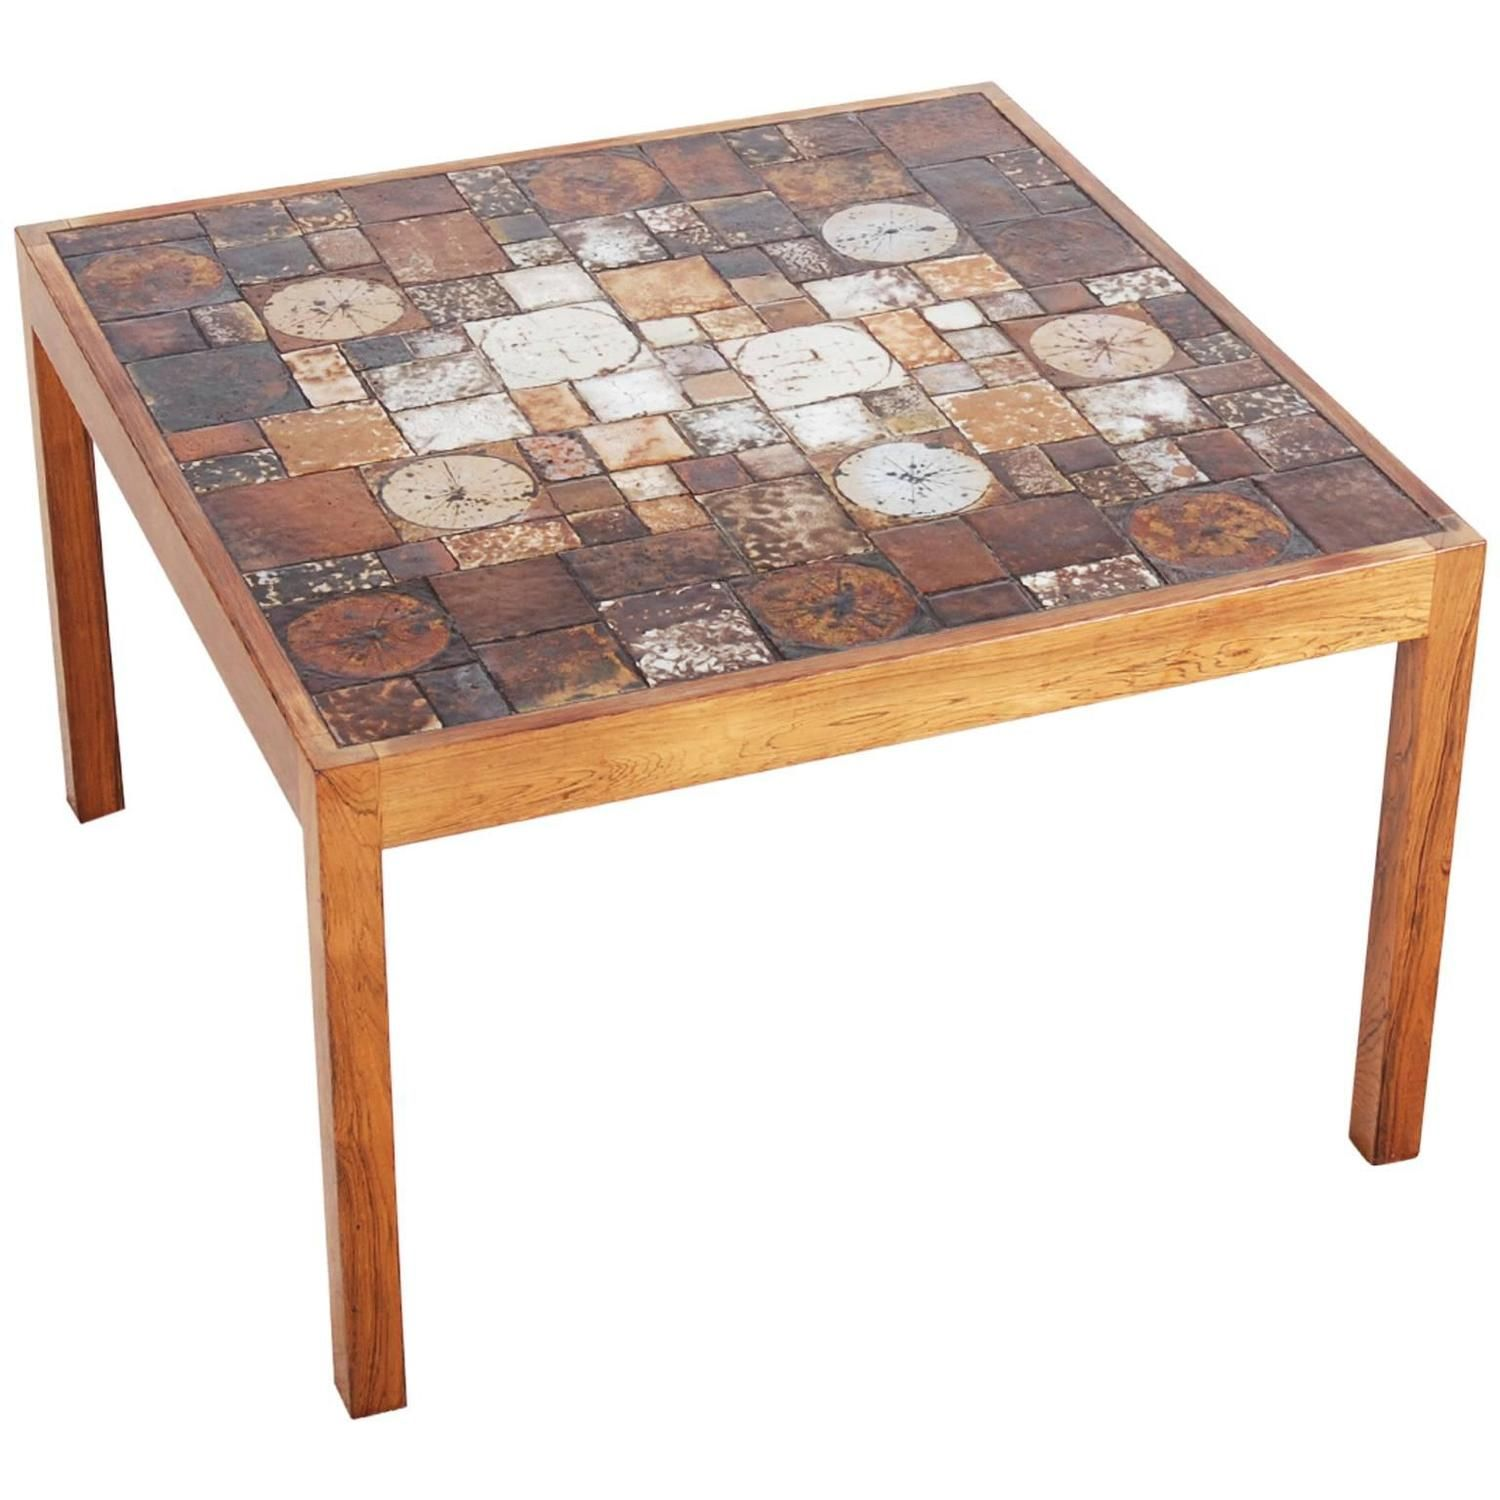 Danish Rosewood Coffee Table With Ceramic Tiles, 1960s